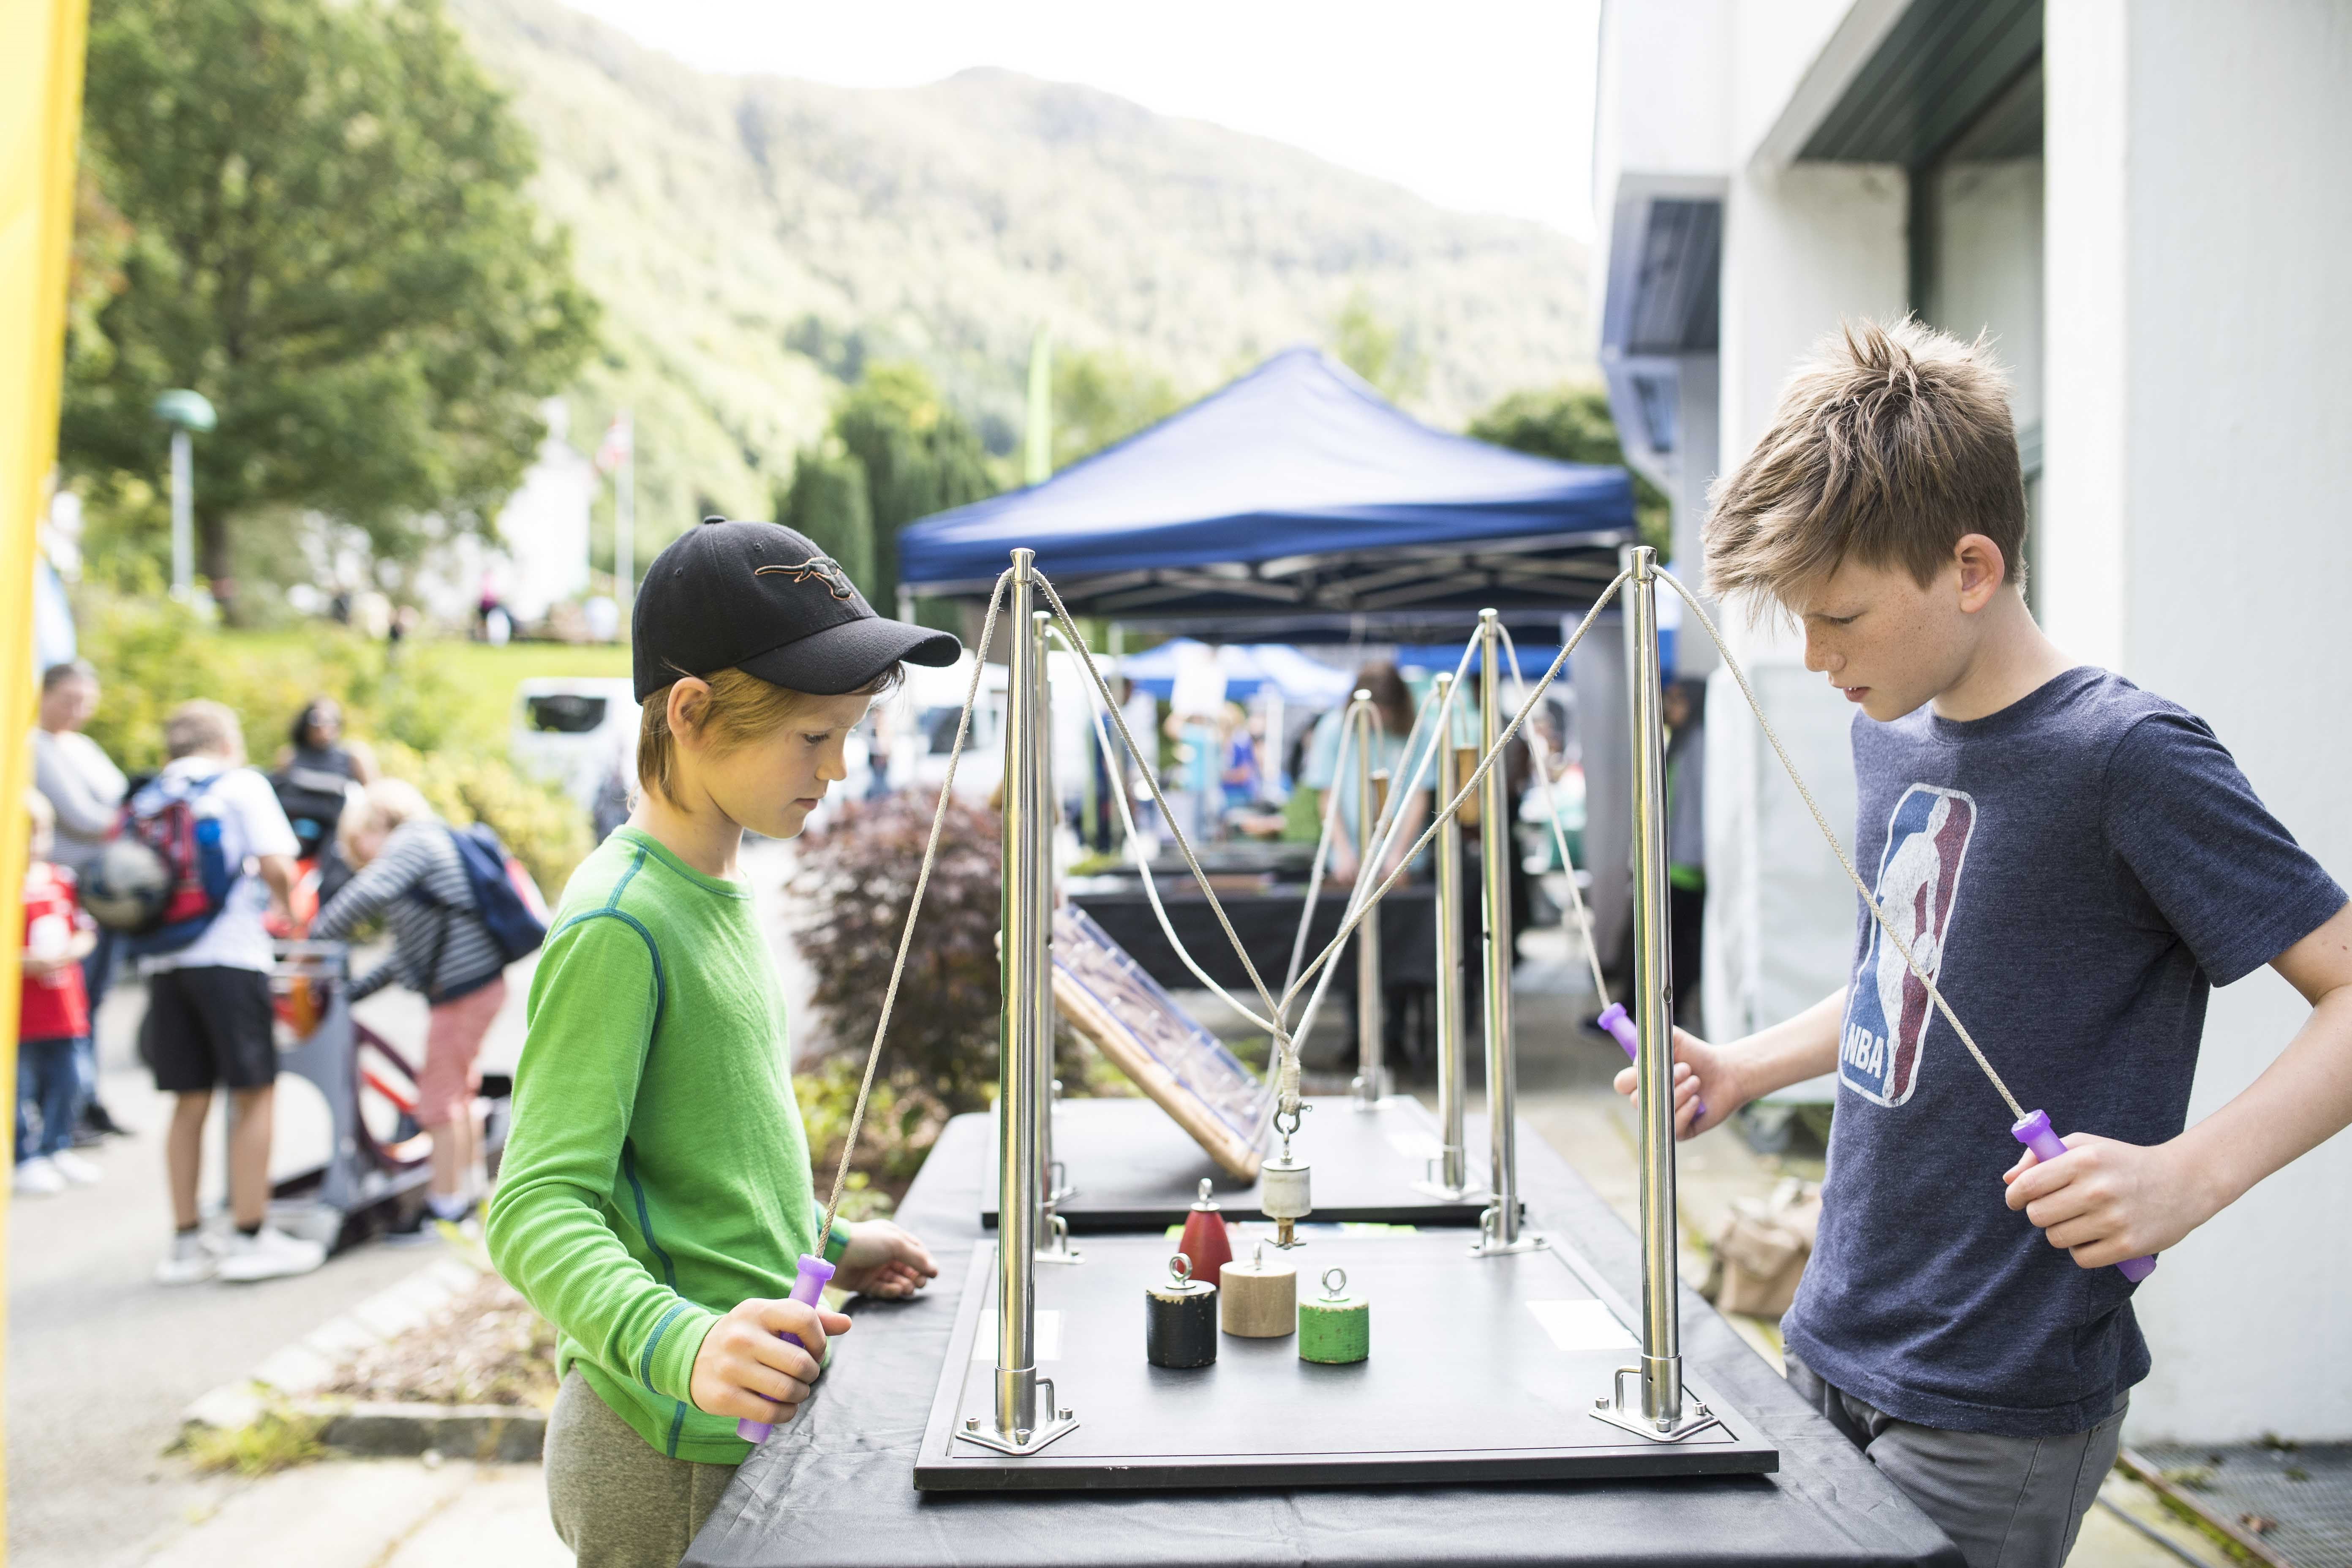 Science show and exhibition